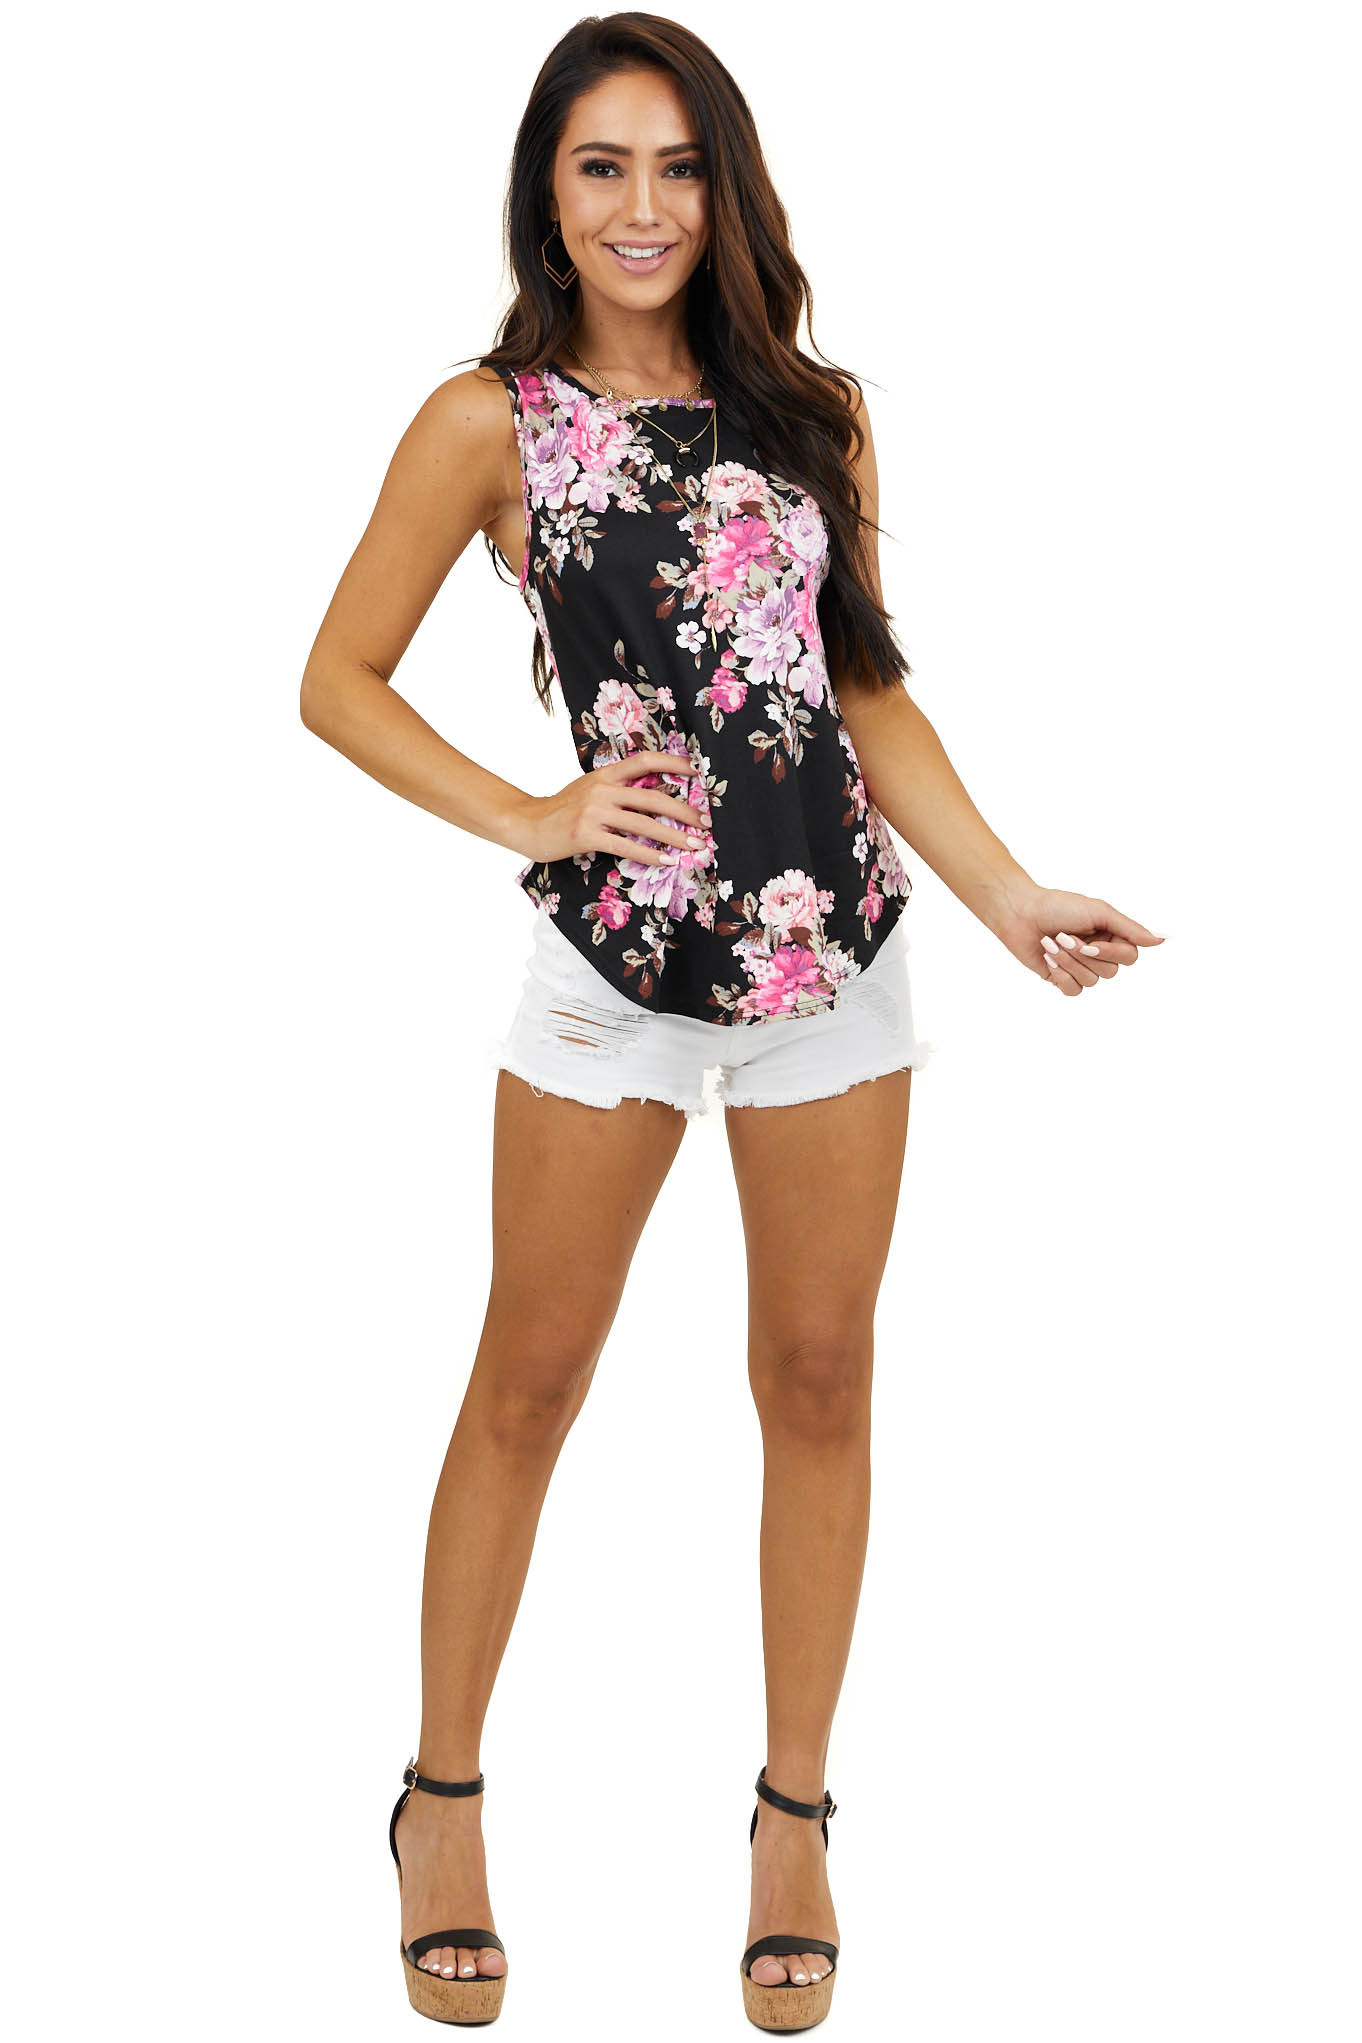 Black Floral Print Knit Tank Top with Rounded Hemline